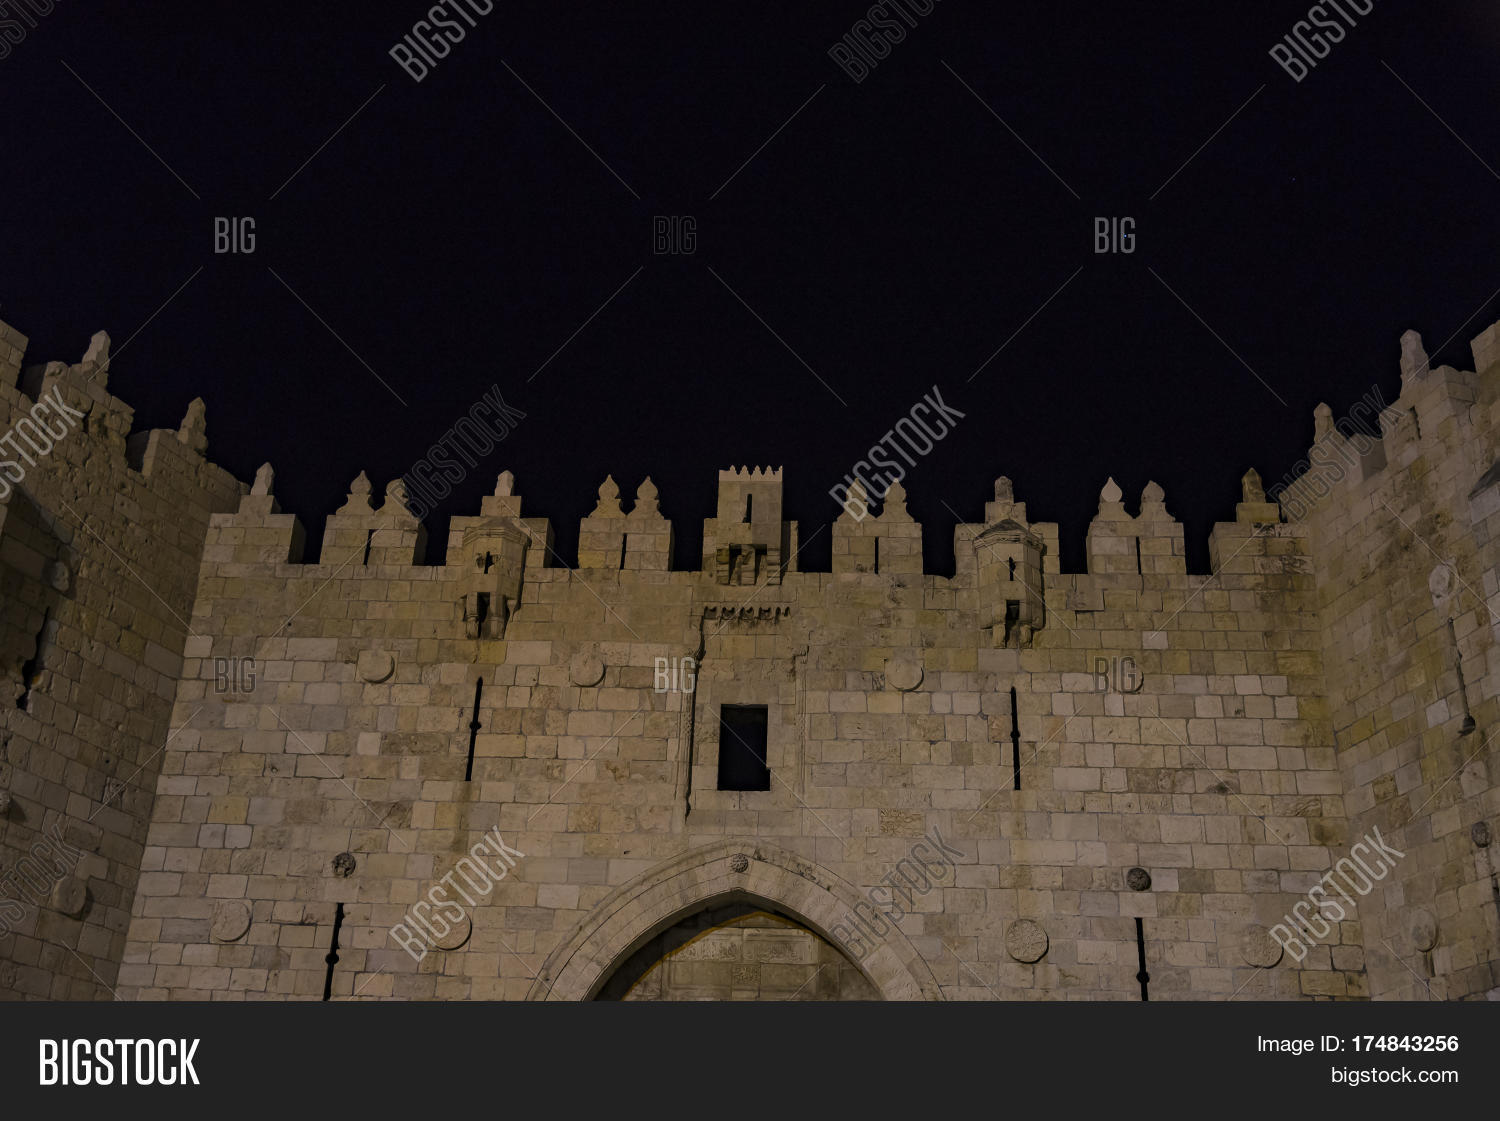 Damascus Gate Old City Image & Photo (Free Trial) | Bigstock